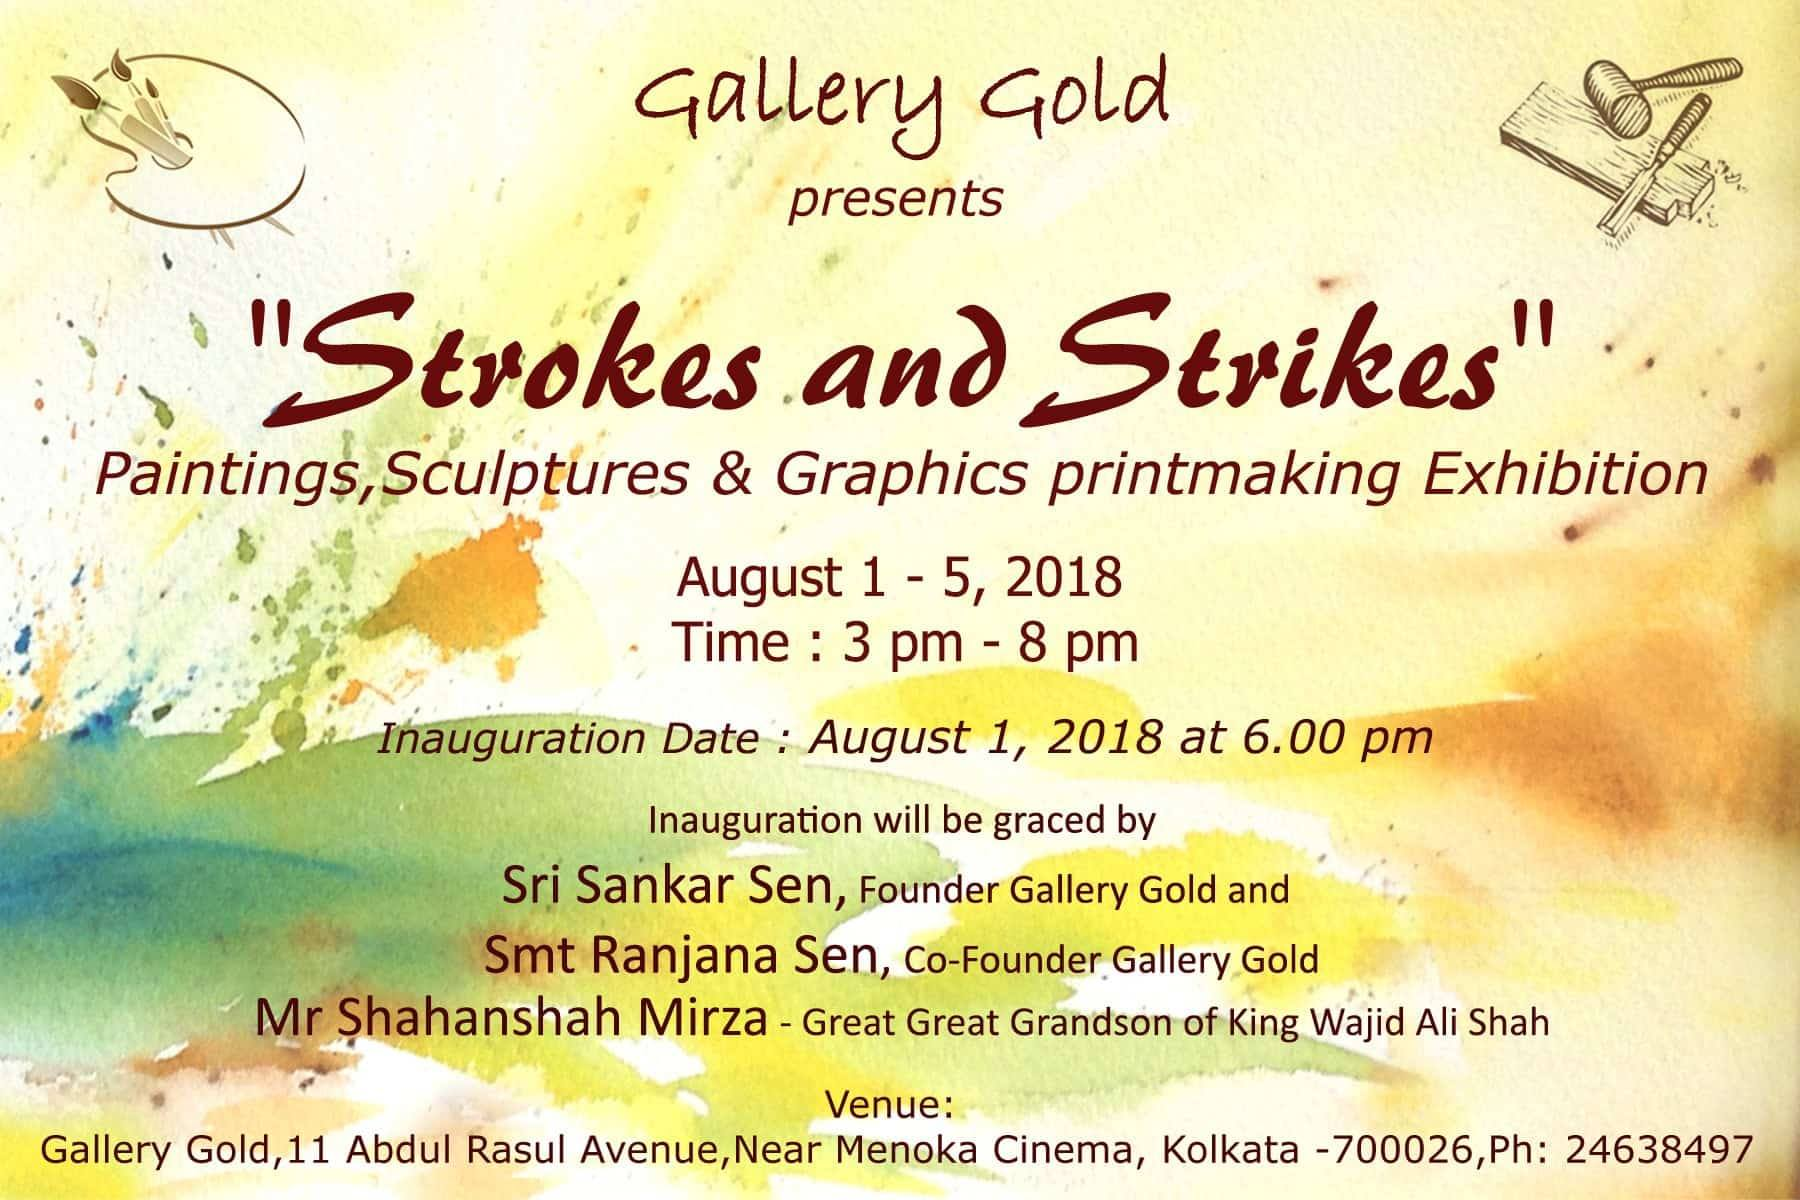 Strokes and Strikes - Paintings, Sculptures and Graphics printmaking Exhibition